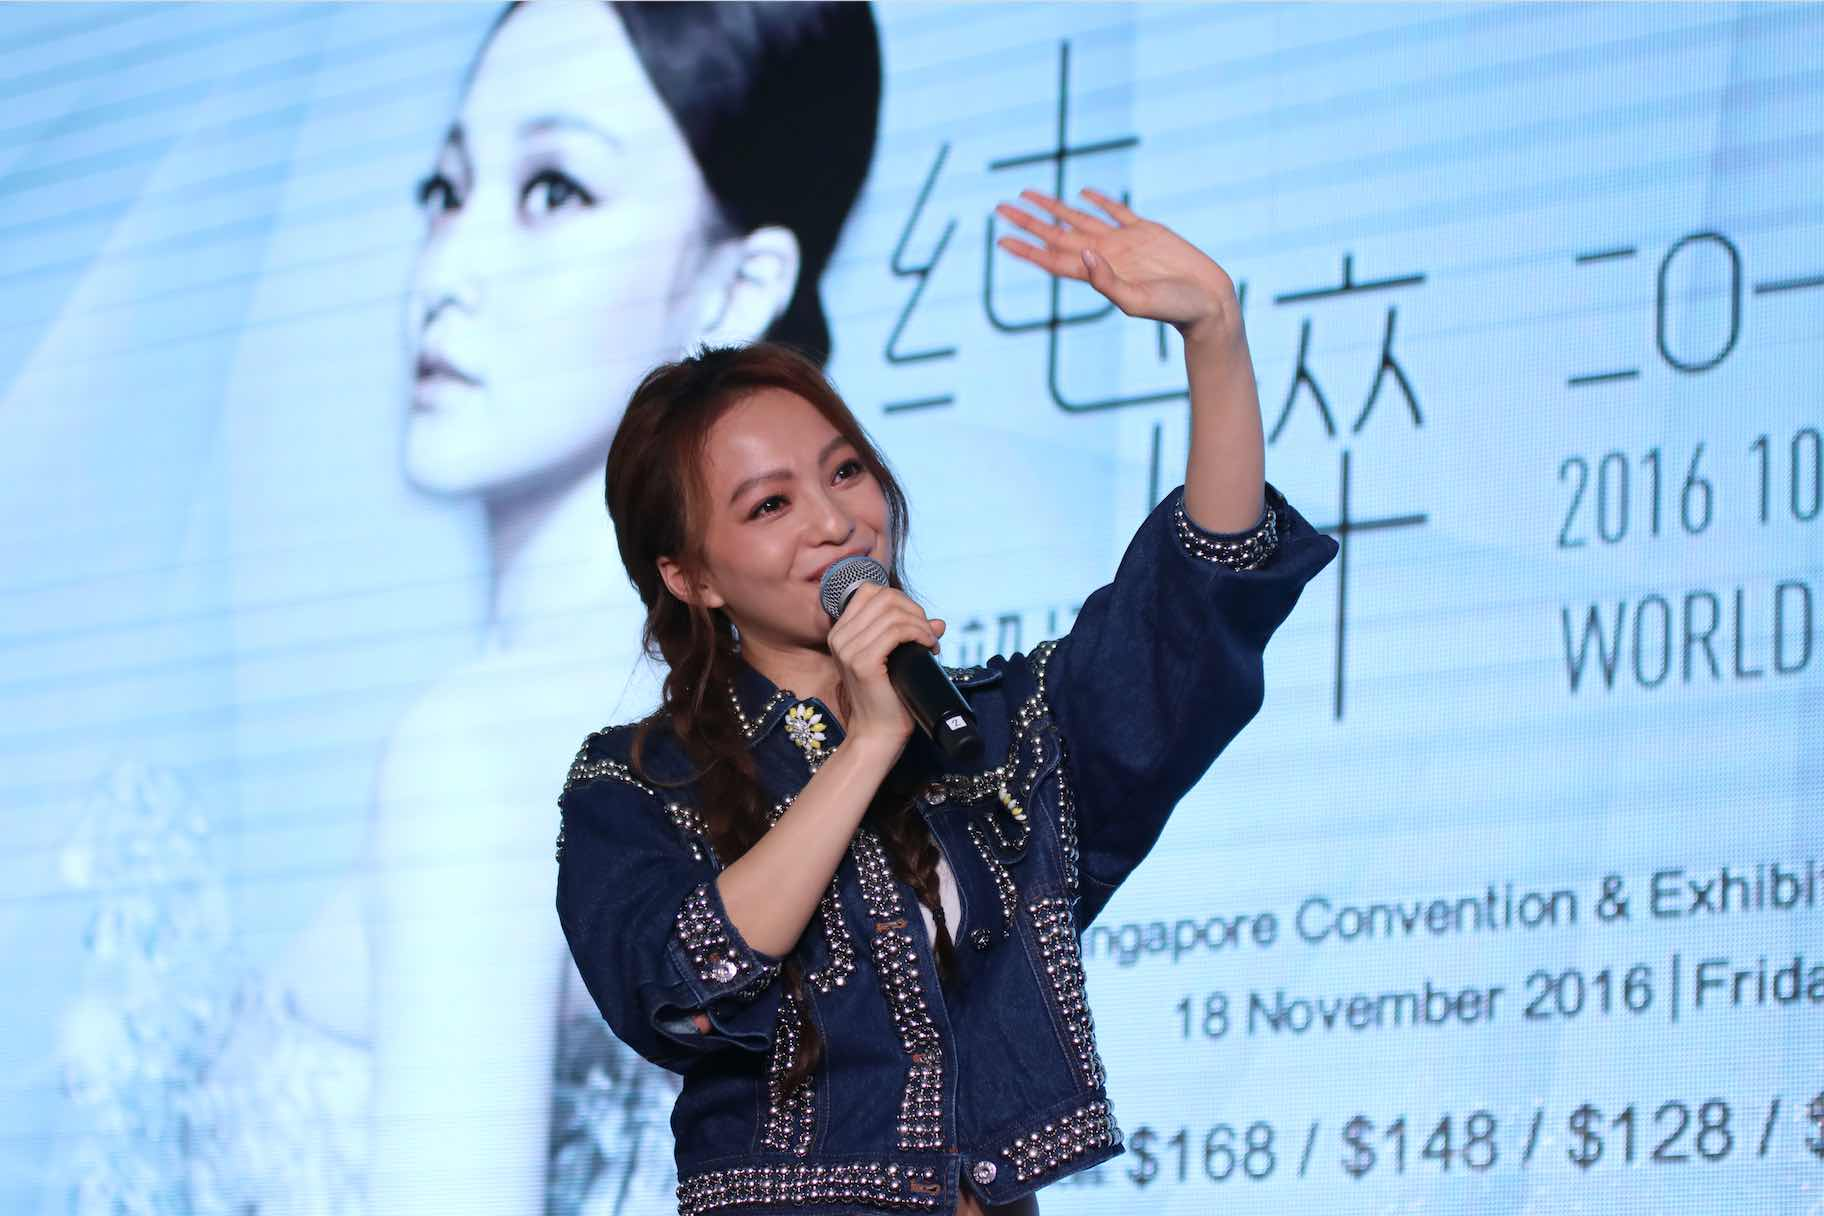 angela-zhang-greeting-fans-at-press-conference-singapore-aspirantsg